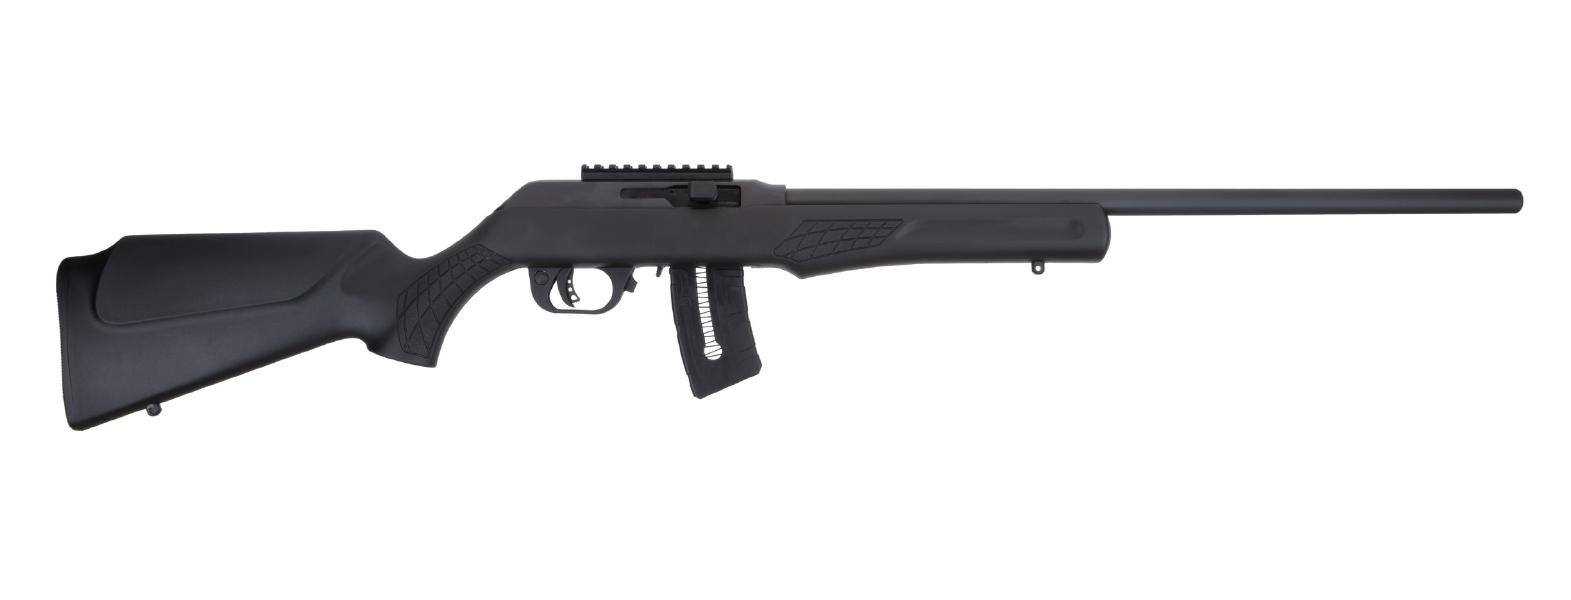 RS22M 22MAG BLK/SYN 21 10+1 -